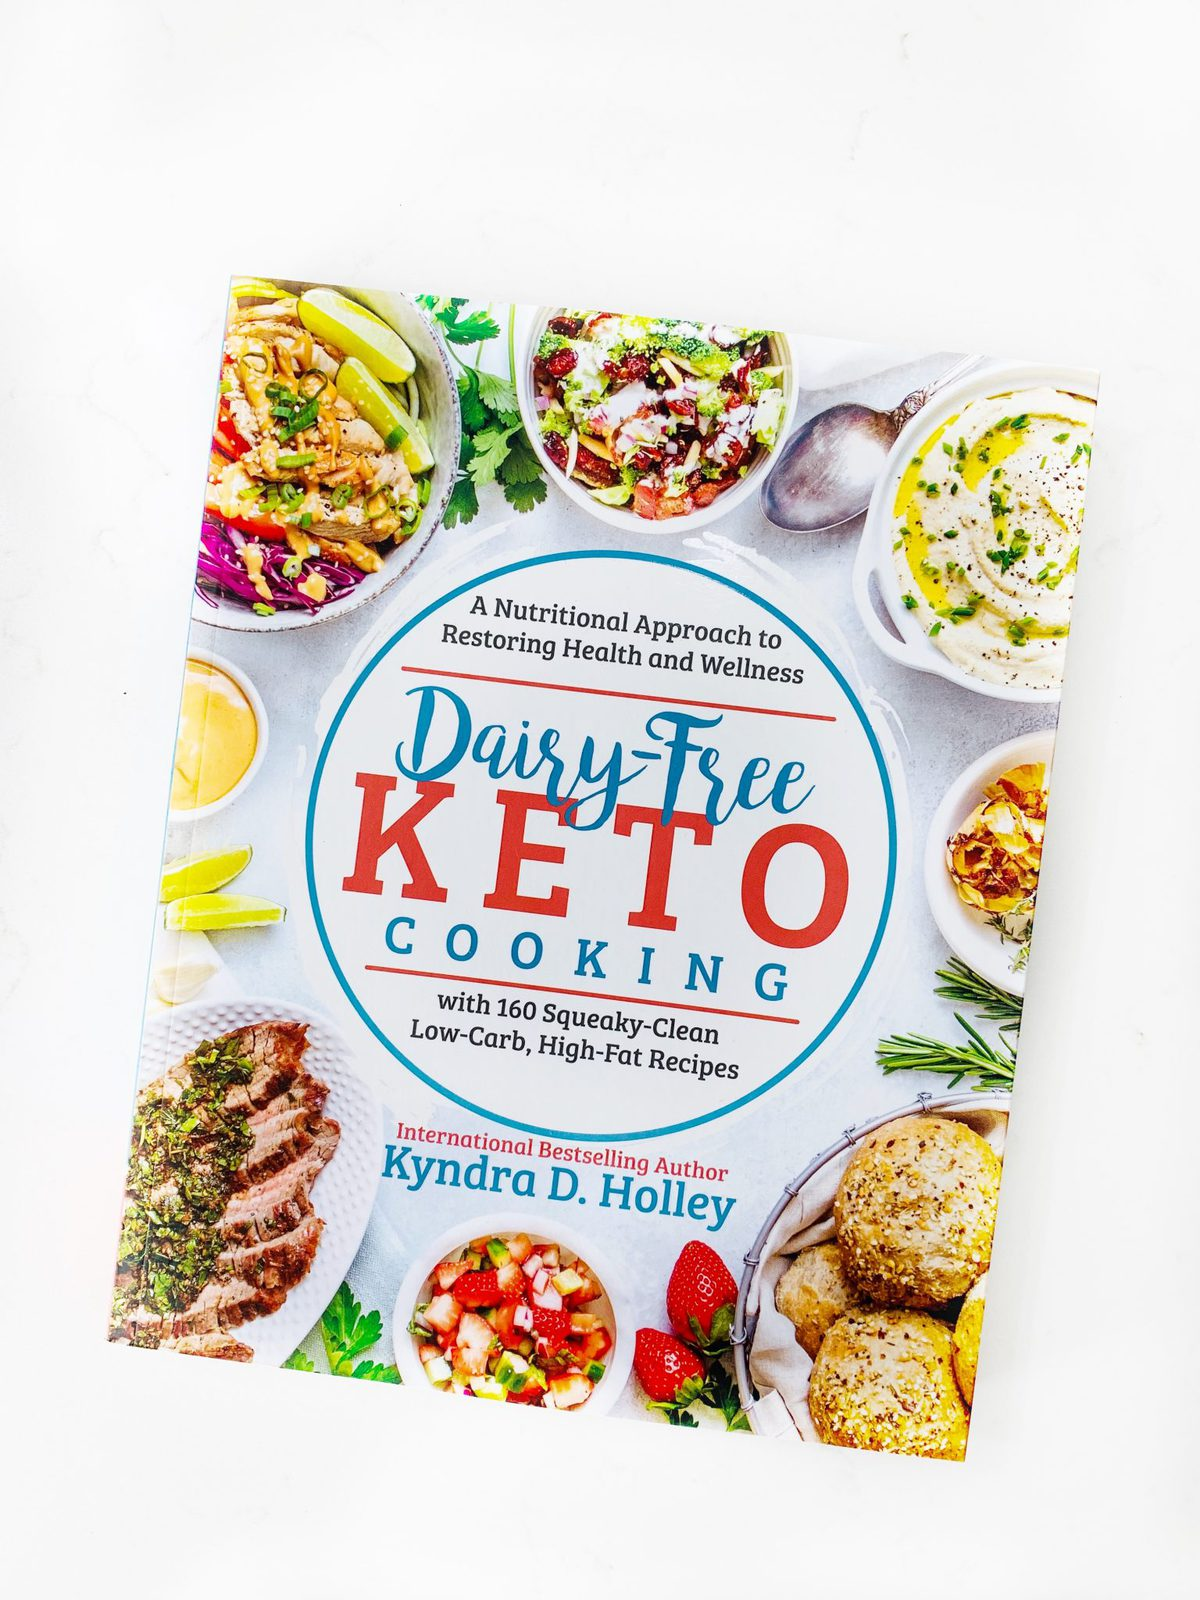 Flat lay shot of a cookbook - Dairy Free Keto Cooking